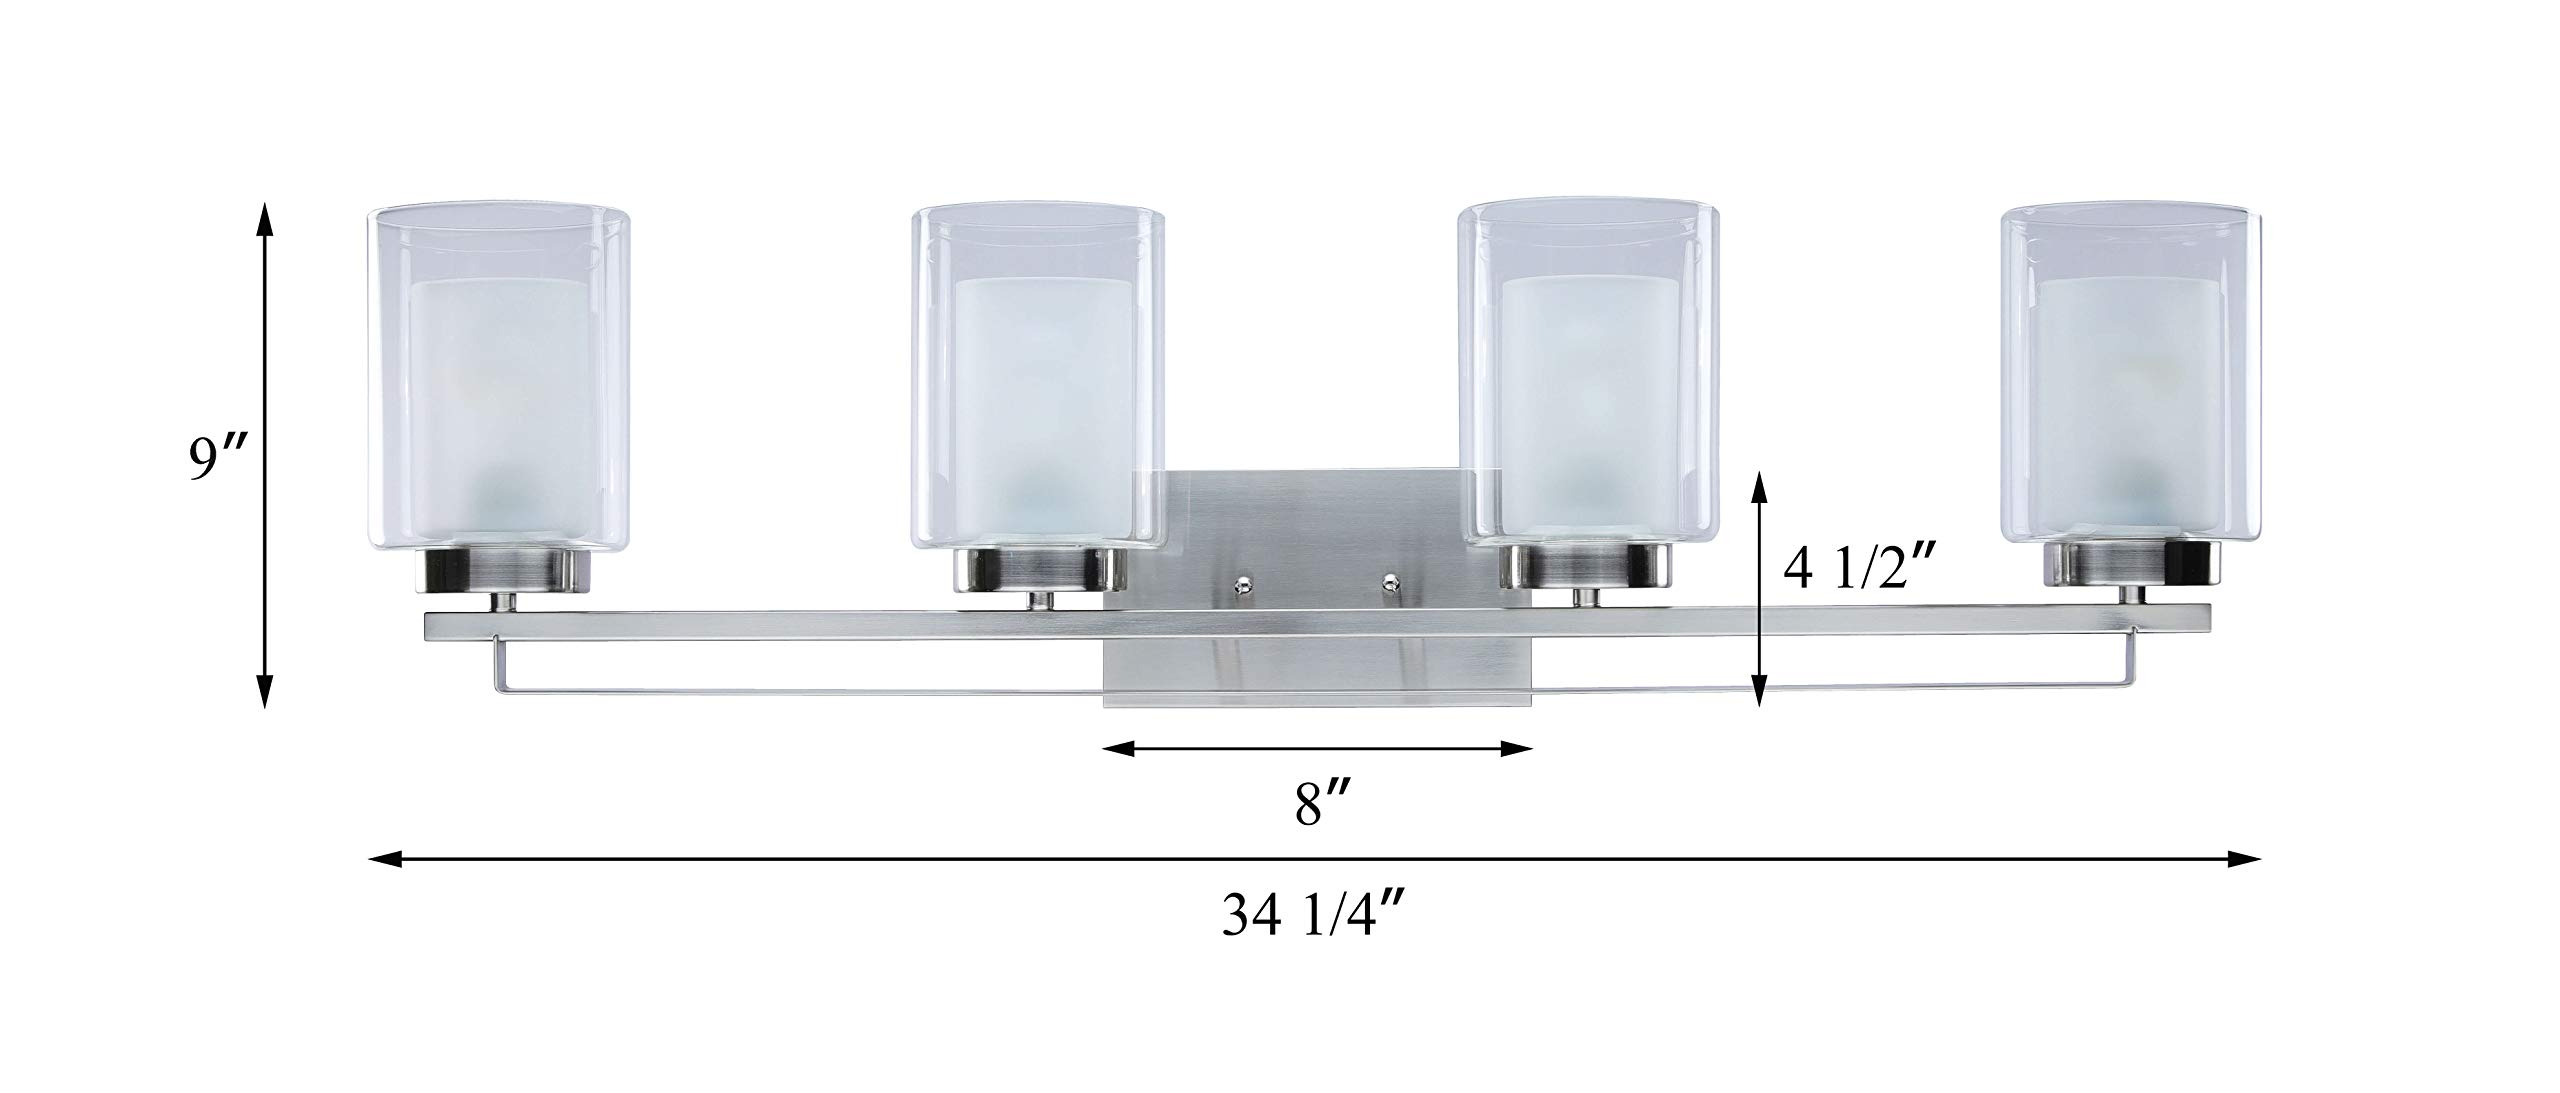 Wall Light 4 Light Bathroom Vanity Lighting with Dual Glass Shade in Brushed Nickel Indoor Modern Wall Mount Light for Bathroom & Kitchen XiNBEi-Lighting XB-W1195-4-BN by XiNBEi Lighting (Image #6)